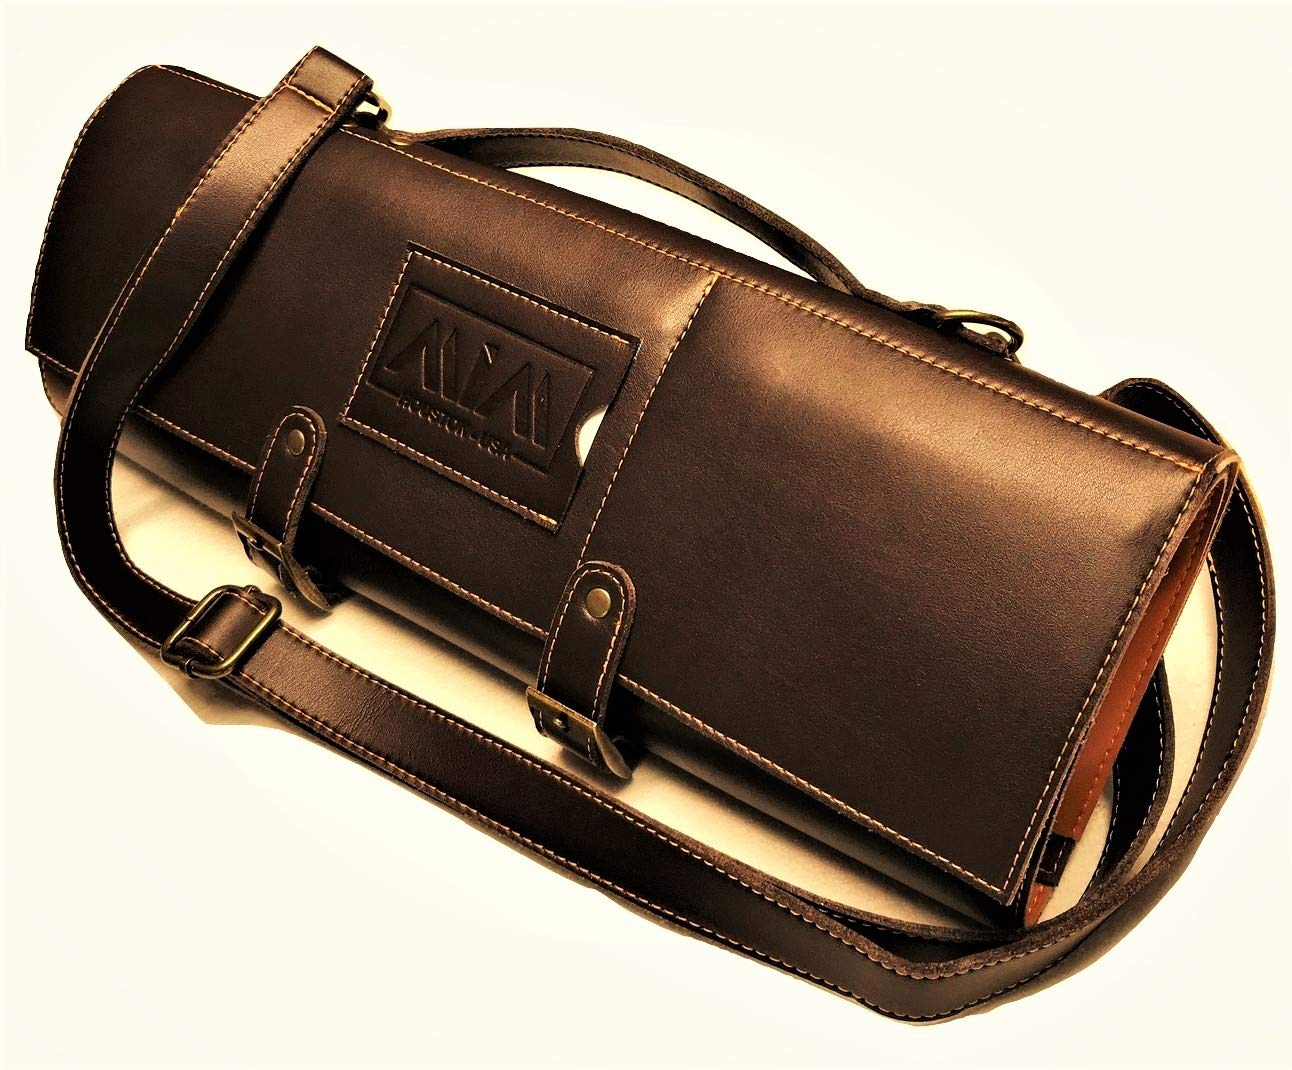 MiM Houston Chef Knife Bag | Large Chef Knife Roll Bag | Fine Leather | W/Business Card Slot | Dark Oak